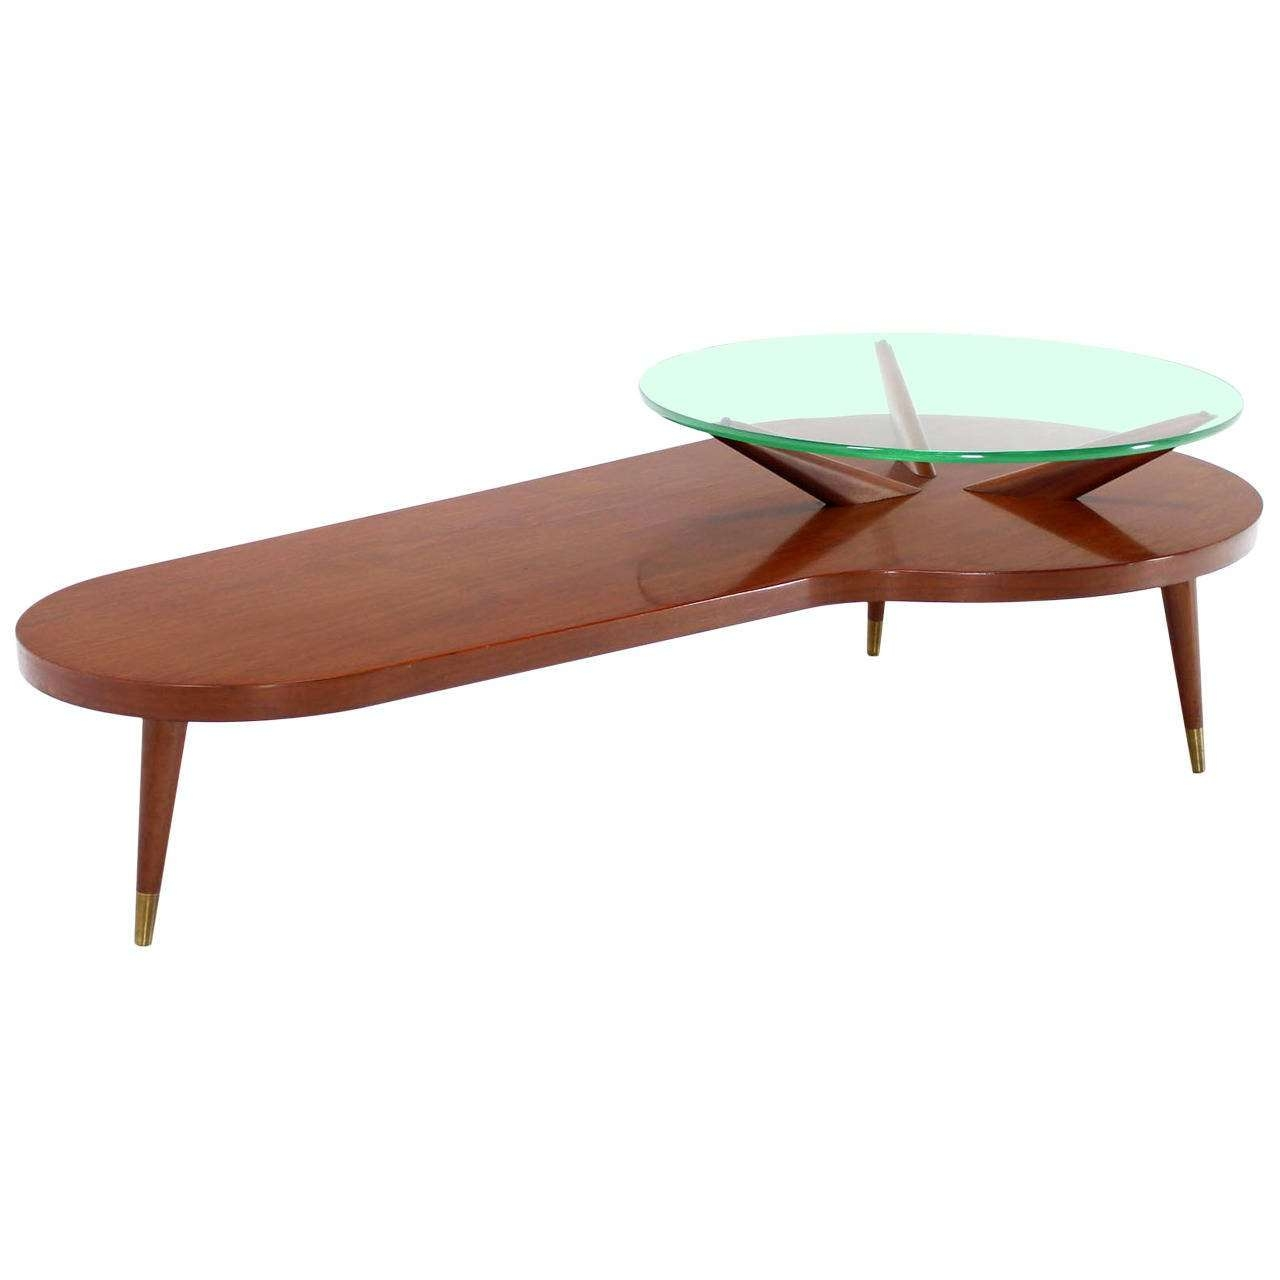 Mid Century Modern Walnut Organic Kidney Shape Coffee Table Round With Fashionable Oval Shaped Glass Coffee Tables (View 7 of 20)